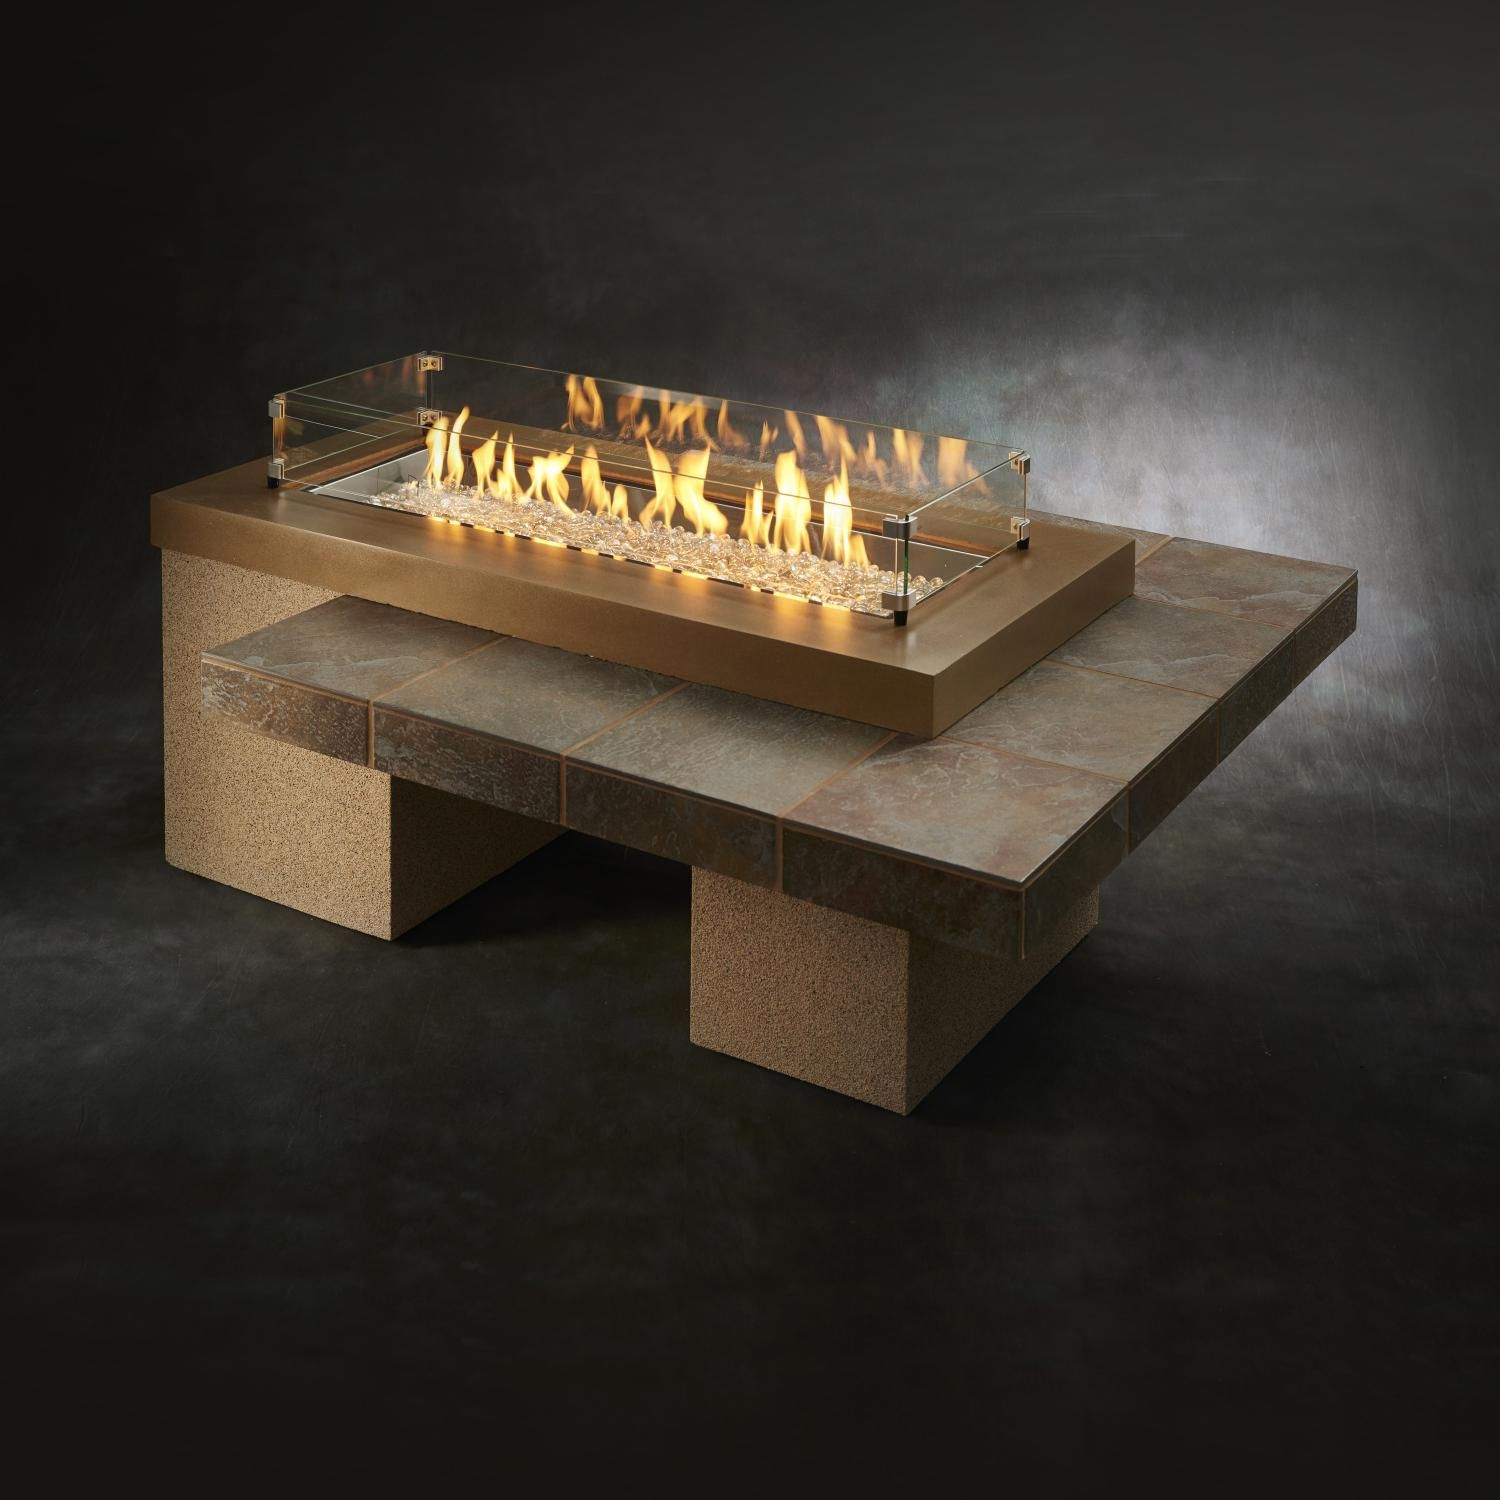 The Outdoor Greatroom Company Uptown 64 Inch Linear Propane Gas Fire Pit Table With 42 Inch Crystal Fire Burner Brown Upt 1242 Brn Propane Fire Pit Table Fire Pit Table Gas Fire Pit Table